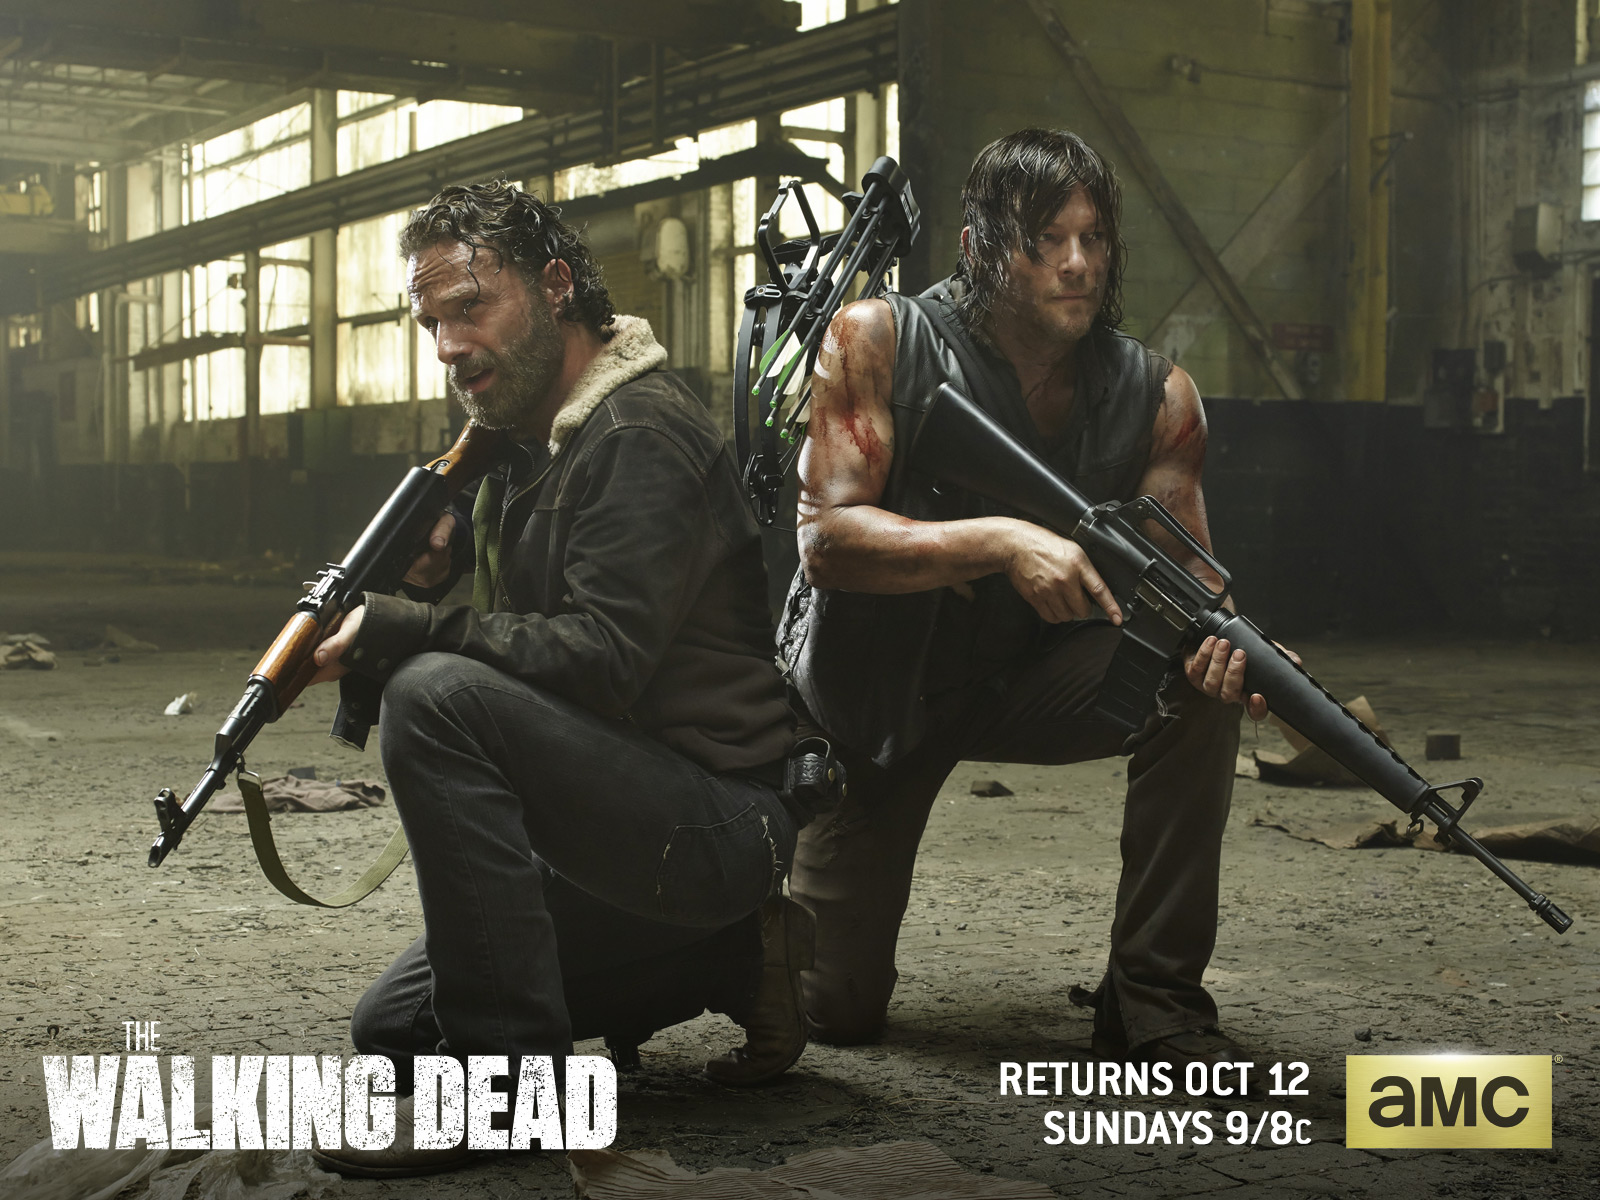 The Walking Dead images Rick Grimes & Daryl Dixon HD wallpaper and background photos